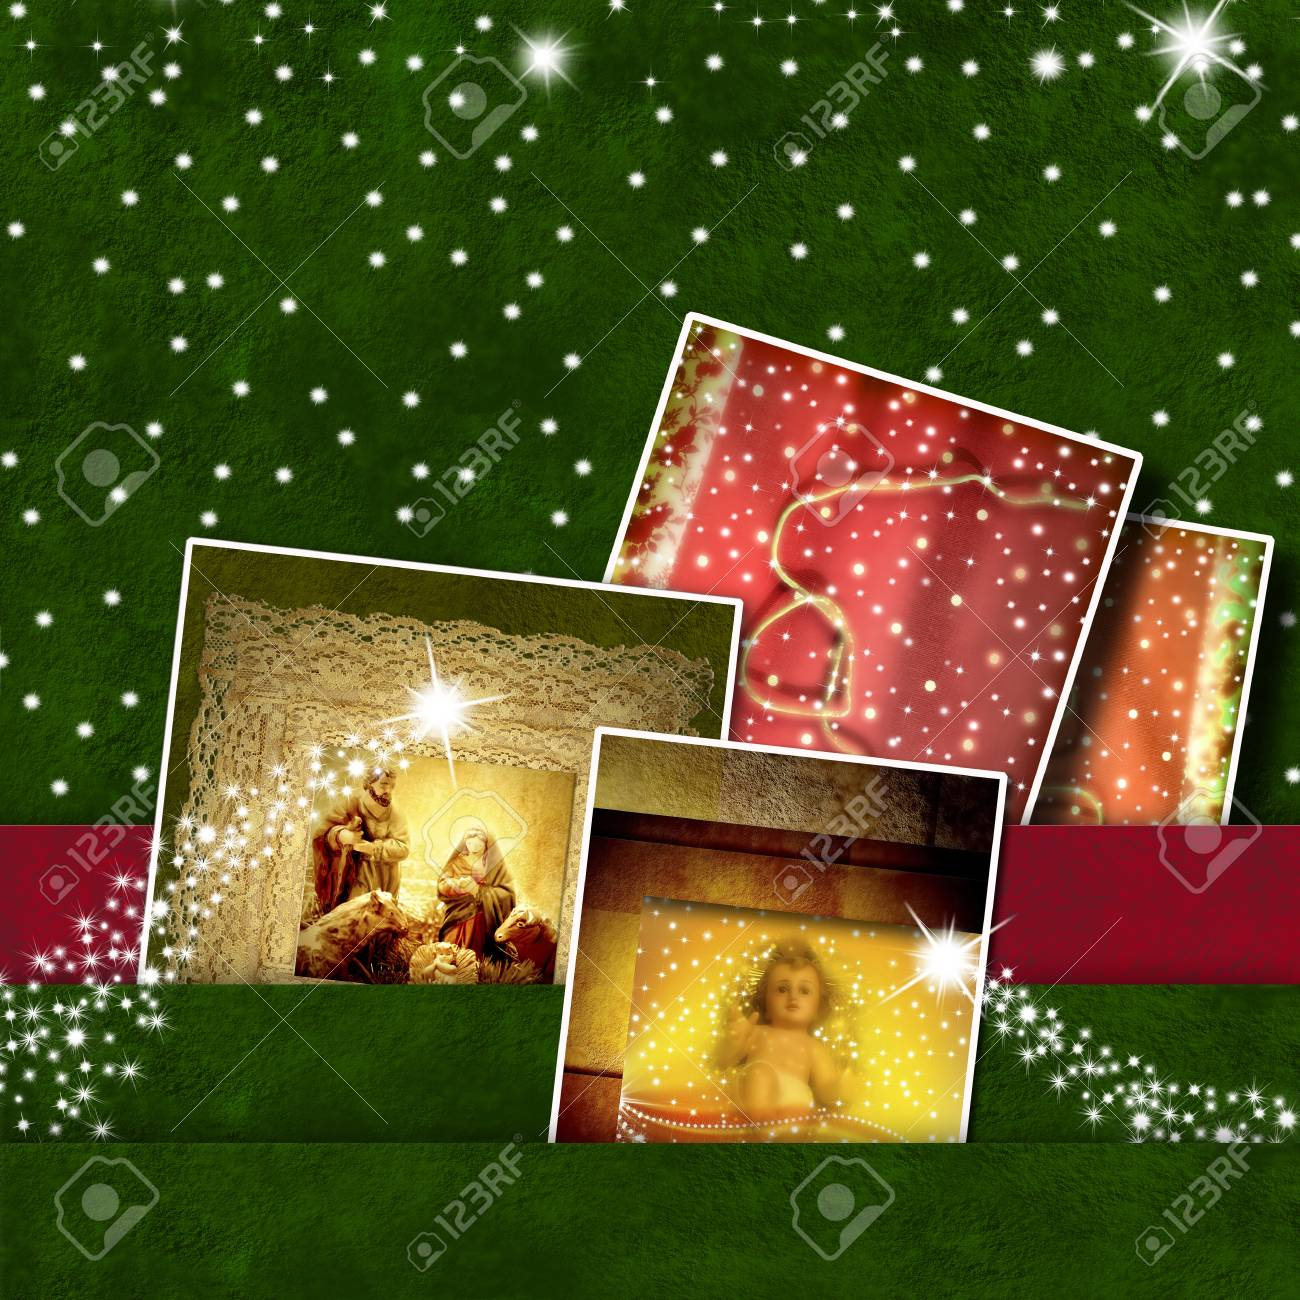 Christmas Cards, Panel With Photos Of Baby Jesus And Nativity ...